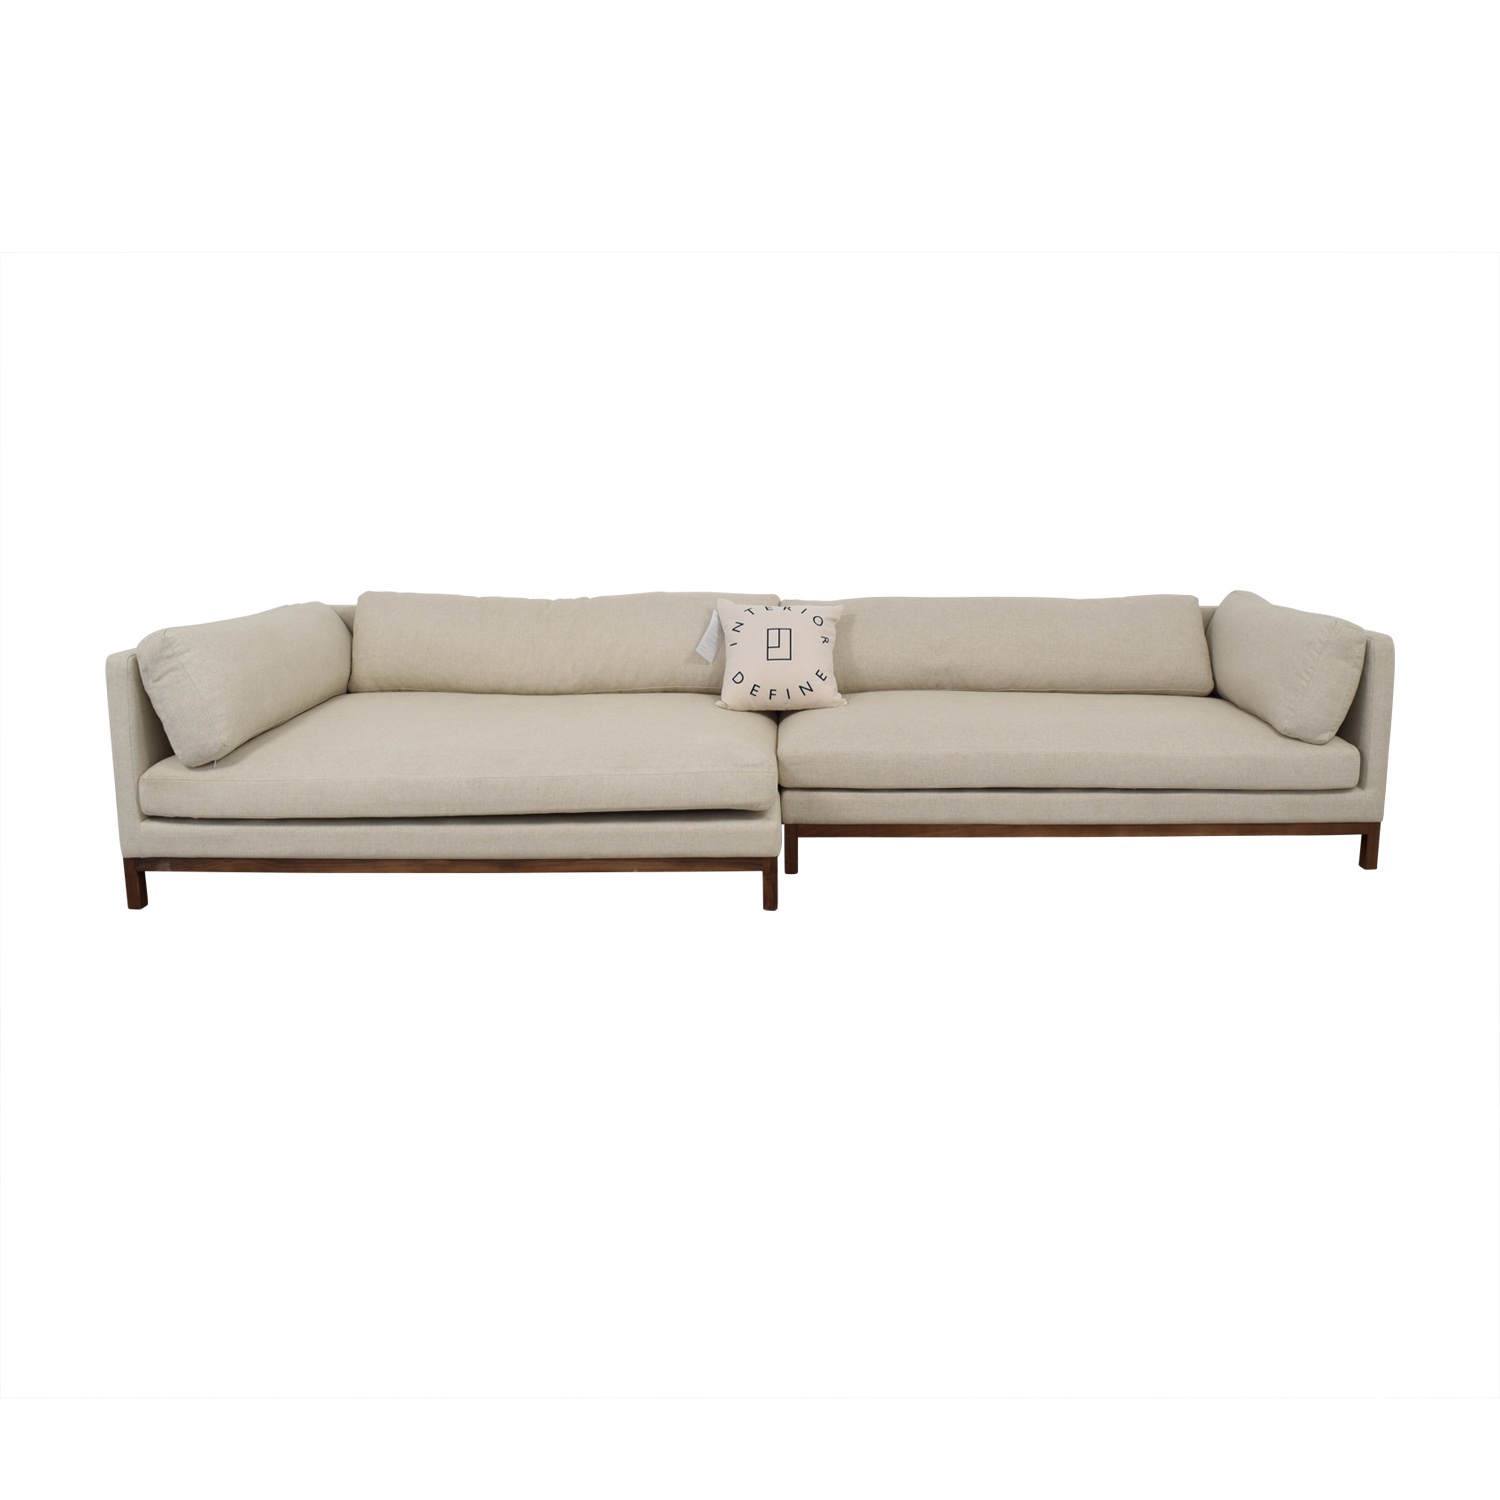 Buy Jasper Left Chaise Sectional Online